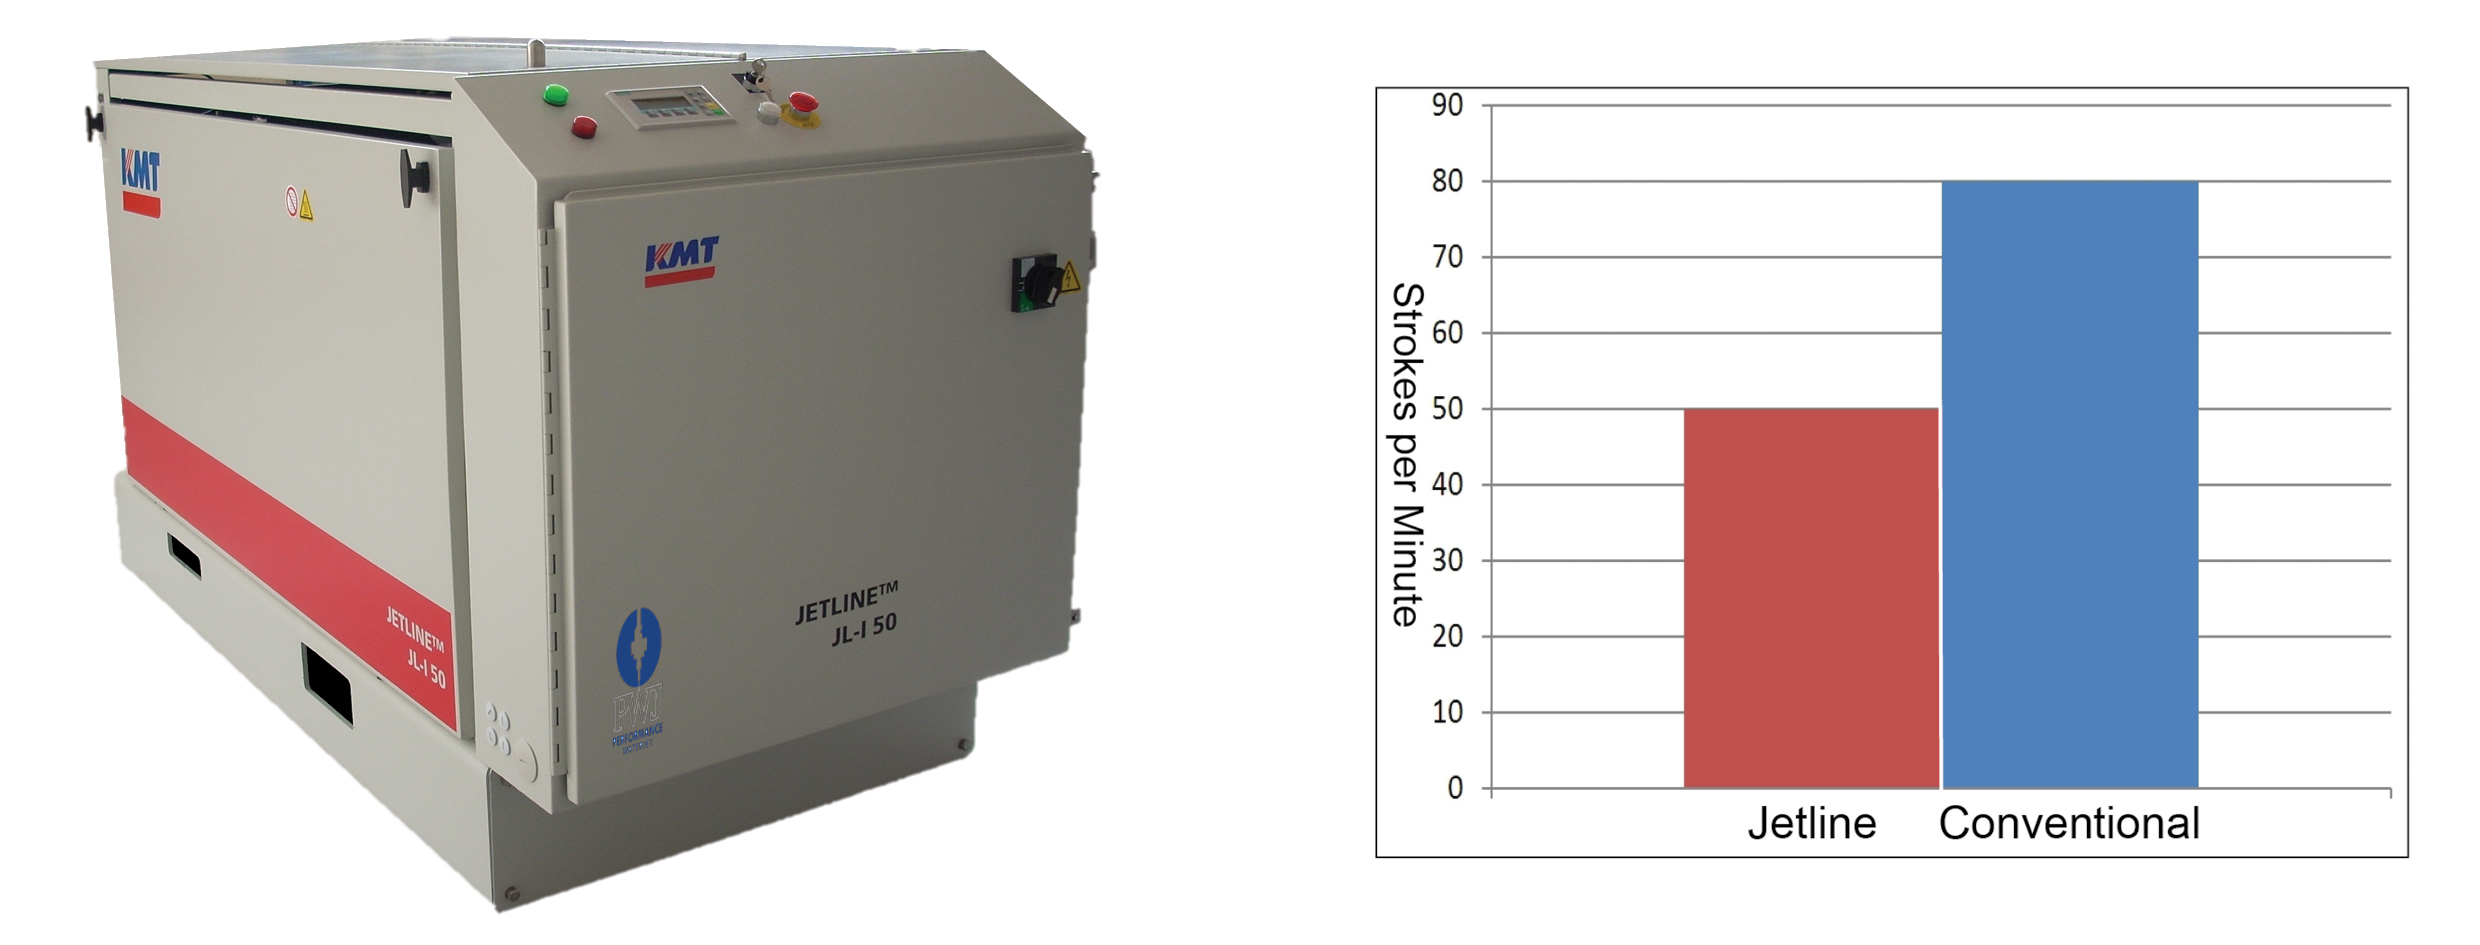 KMT Jetline Pump Comparison